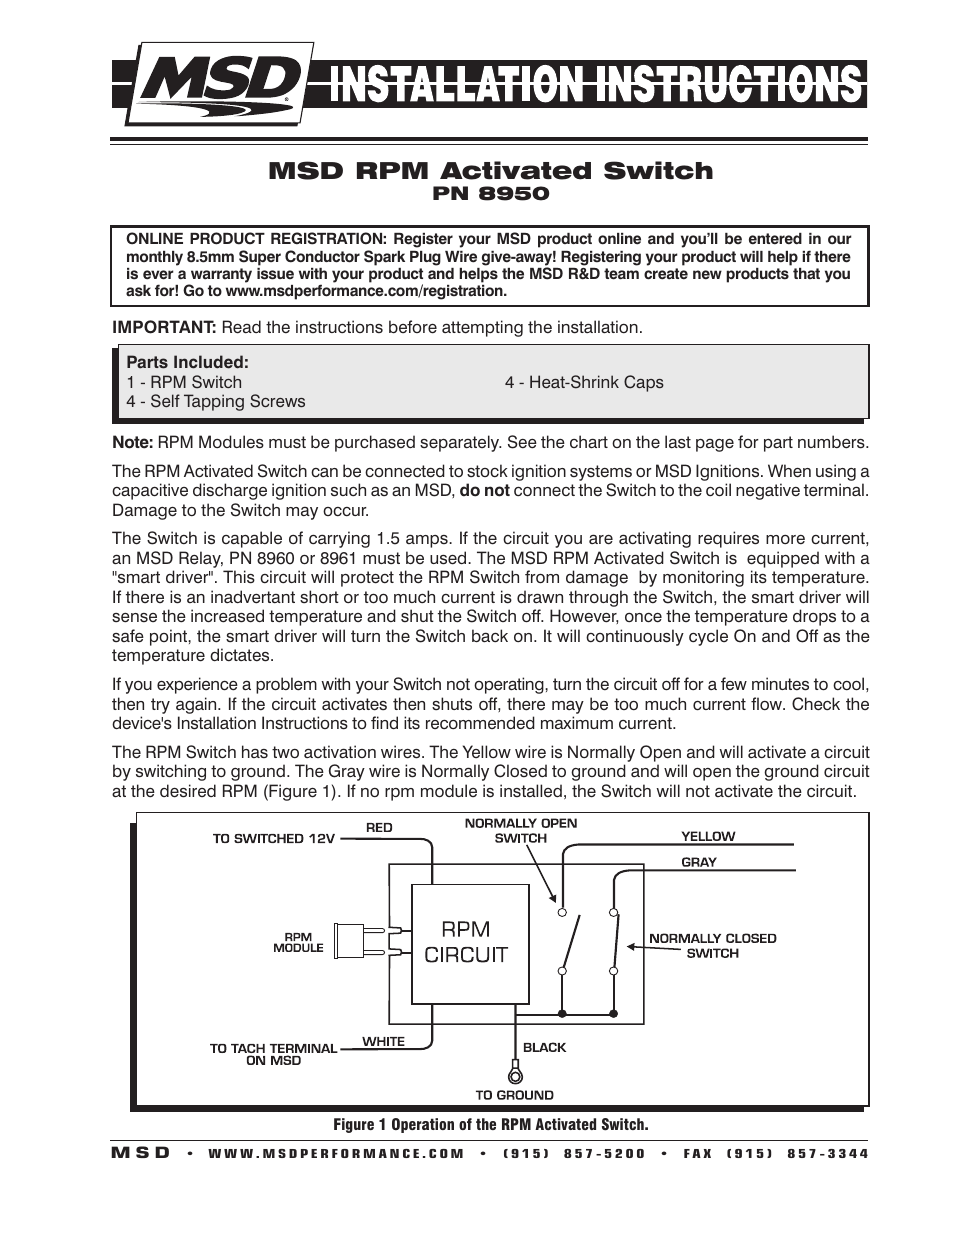 msd 8950 rpm activated switch installation page1?resize\\\=665%2C861 msd 8728 rev limiter wiring diagram wiring diagram shrutiradio msd 8738 wiring diagram at virtualis.co